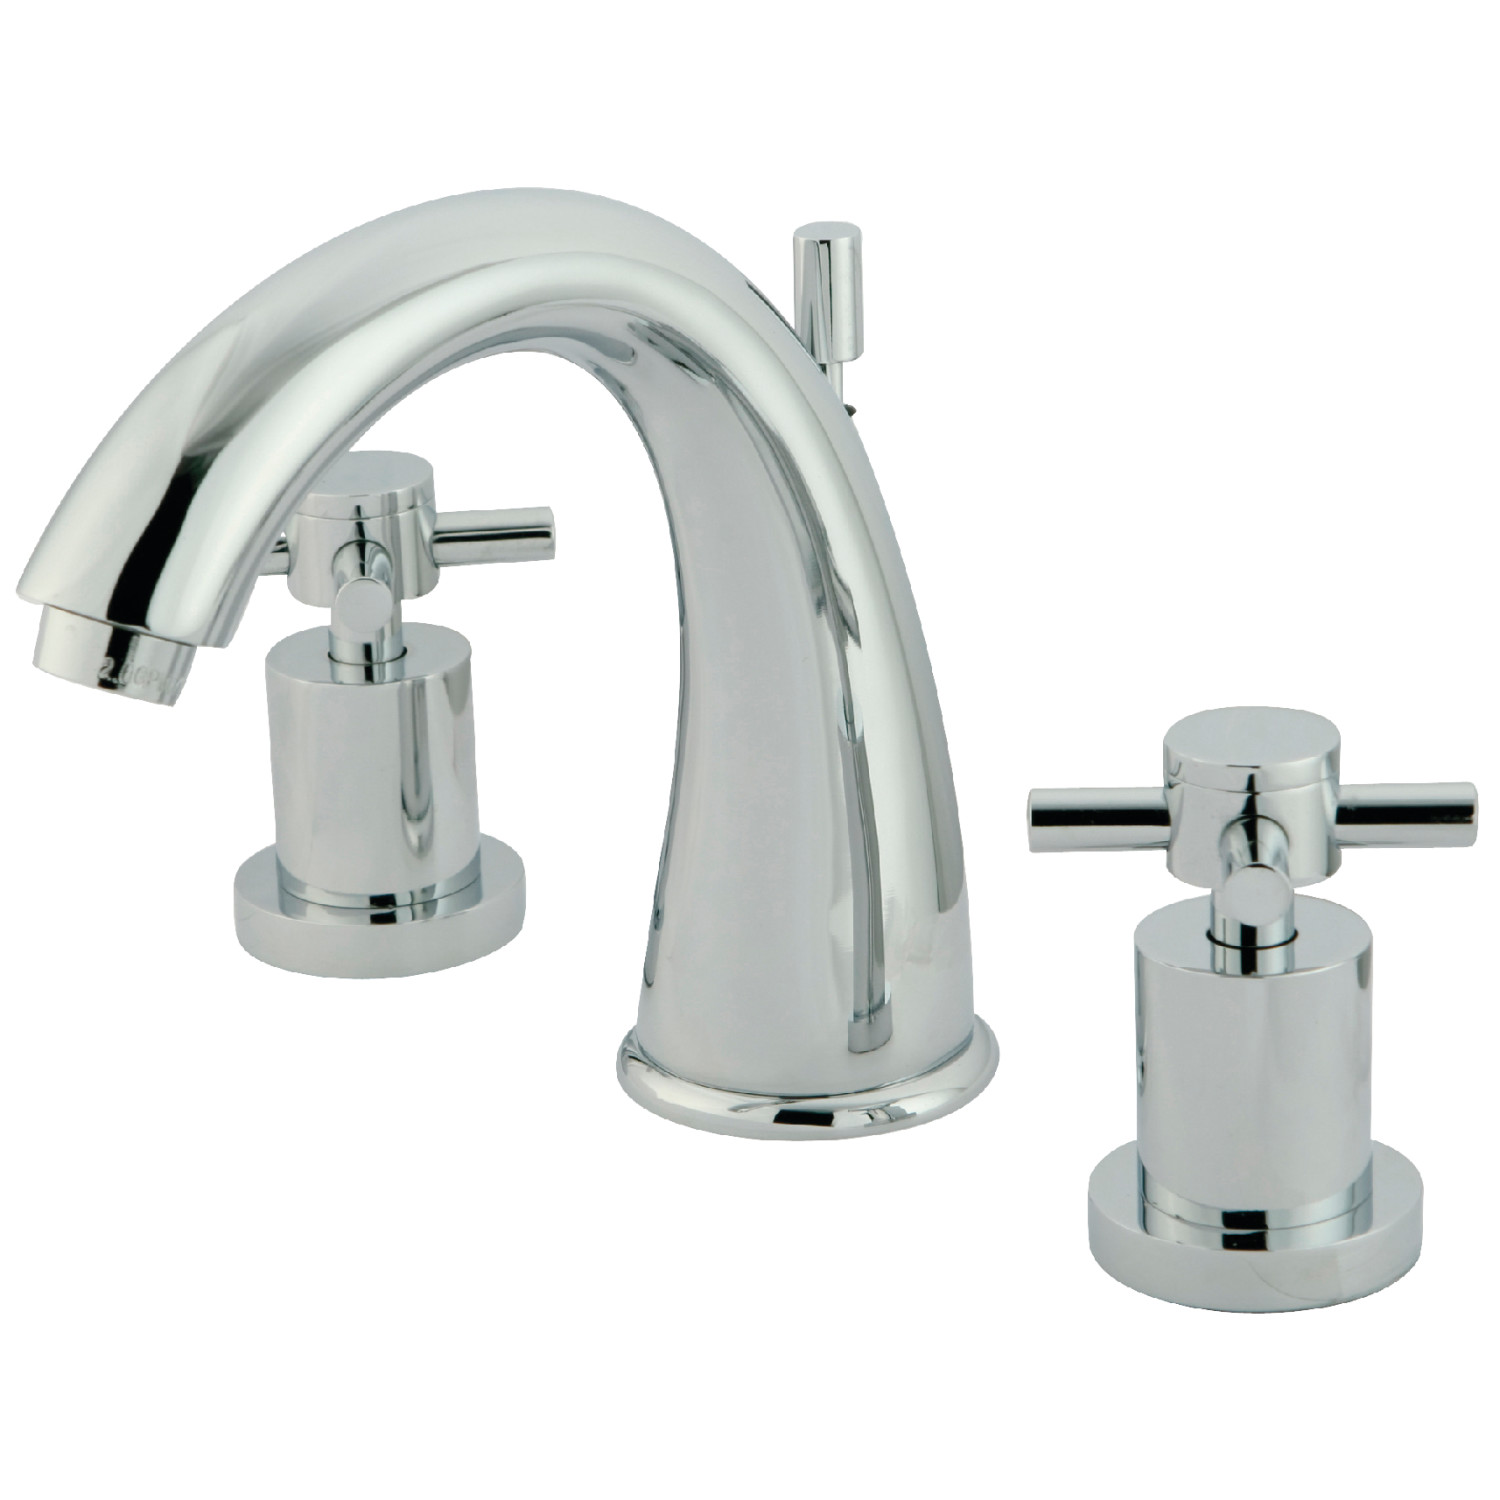 Contemporary 2-Handle Three-Hole Deck Mounted Widespread Bathroom Faucet with Brass Pop-Up in Polished Chrome